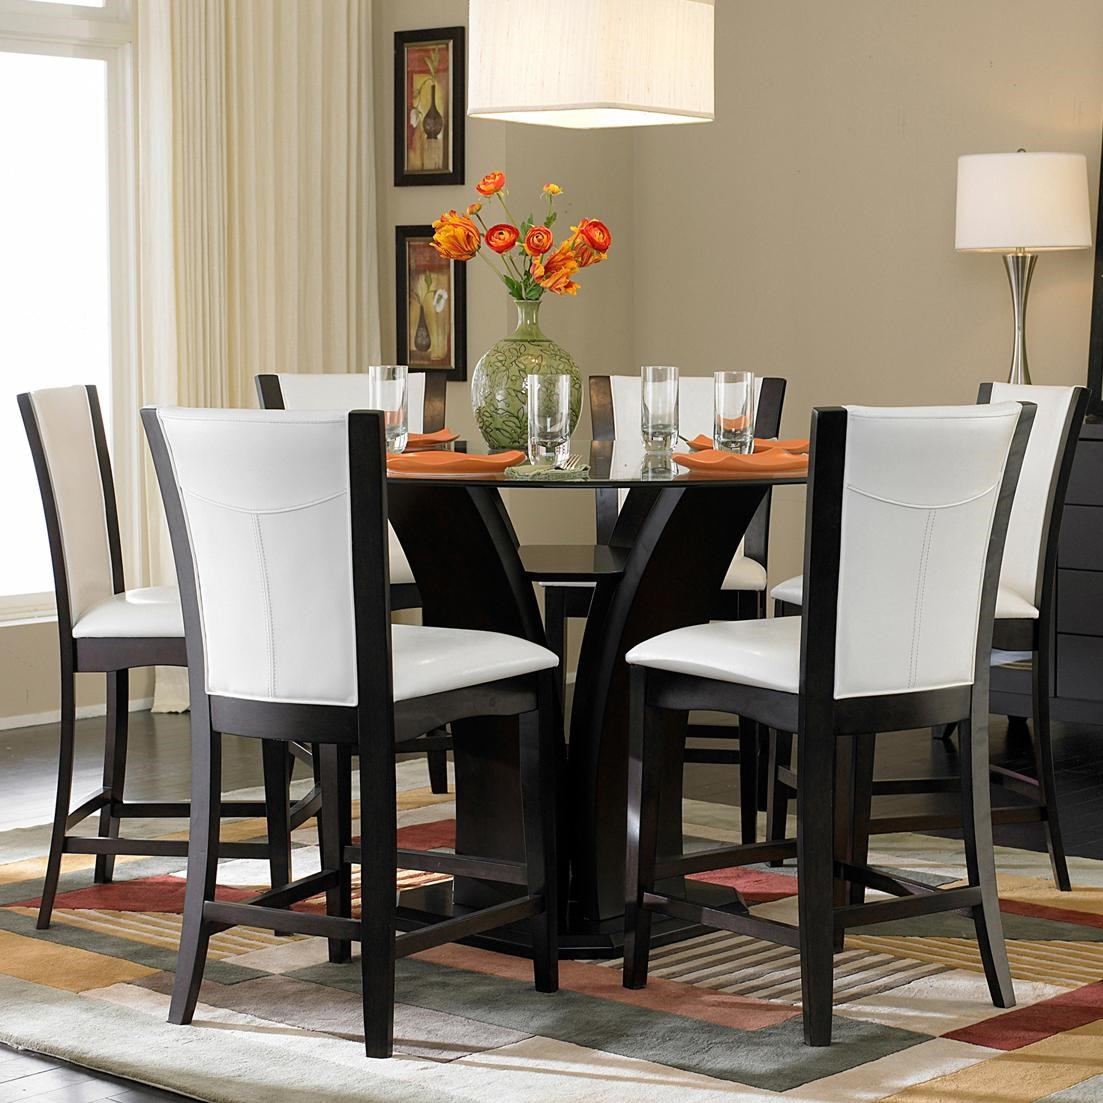 Homelegance 710 7 Piece Counter Height Glass Top Dining Set